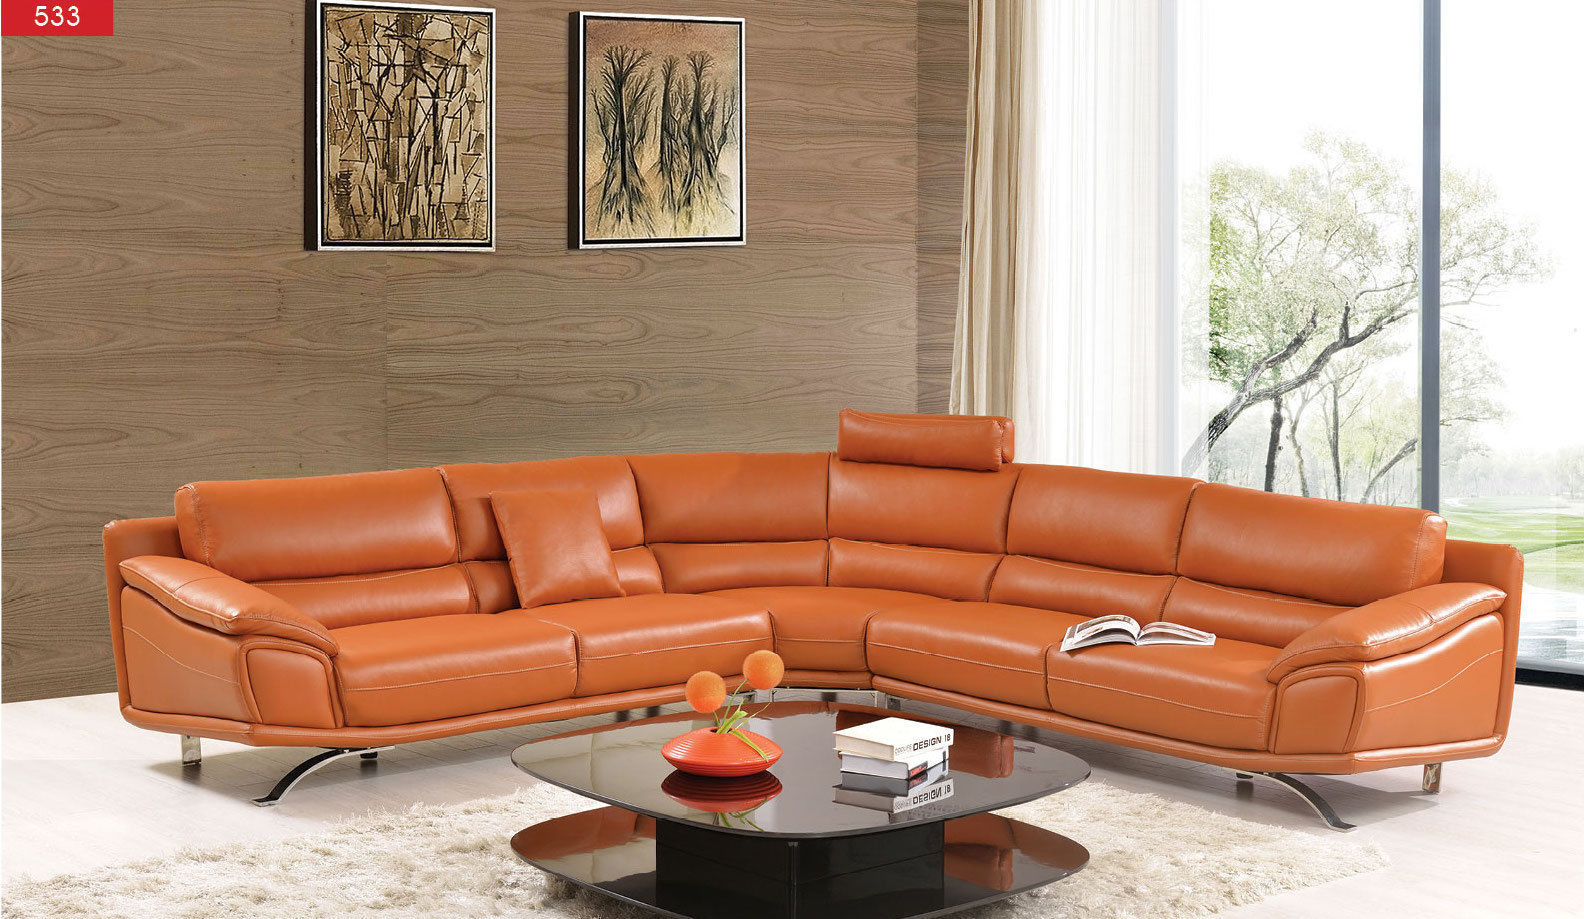 ESF 533  Leather Sectional Sofa Chic Contemporary Modern